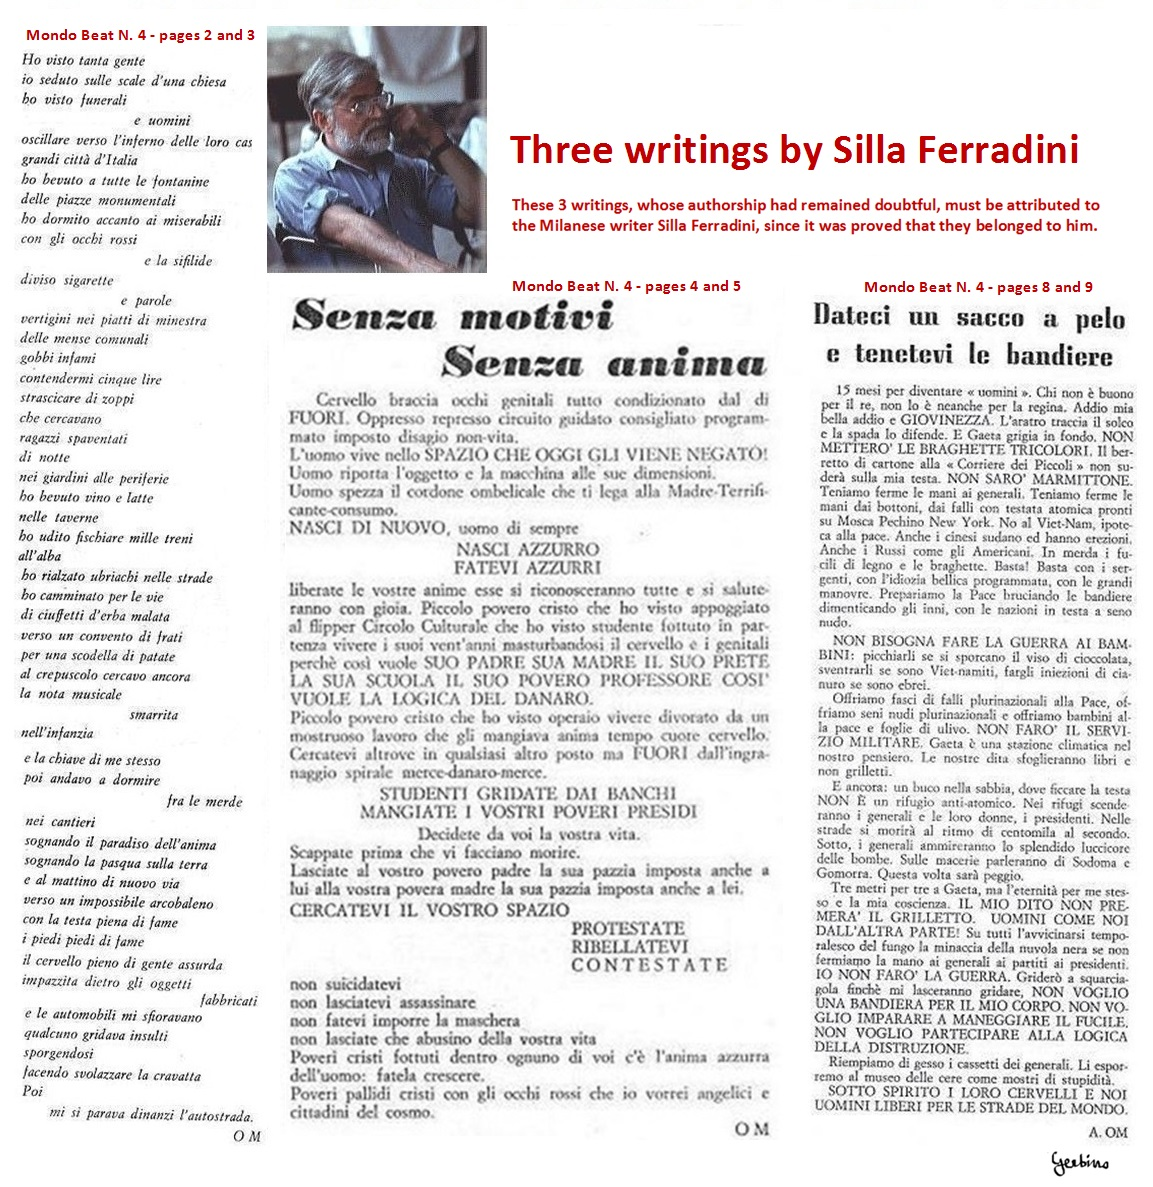 3 writings to be attributed to the Milanese writer Silla Ferradini